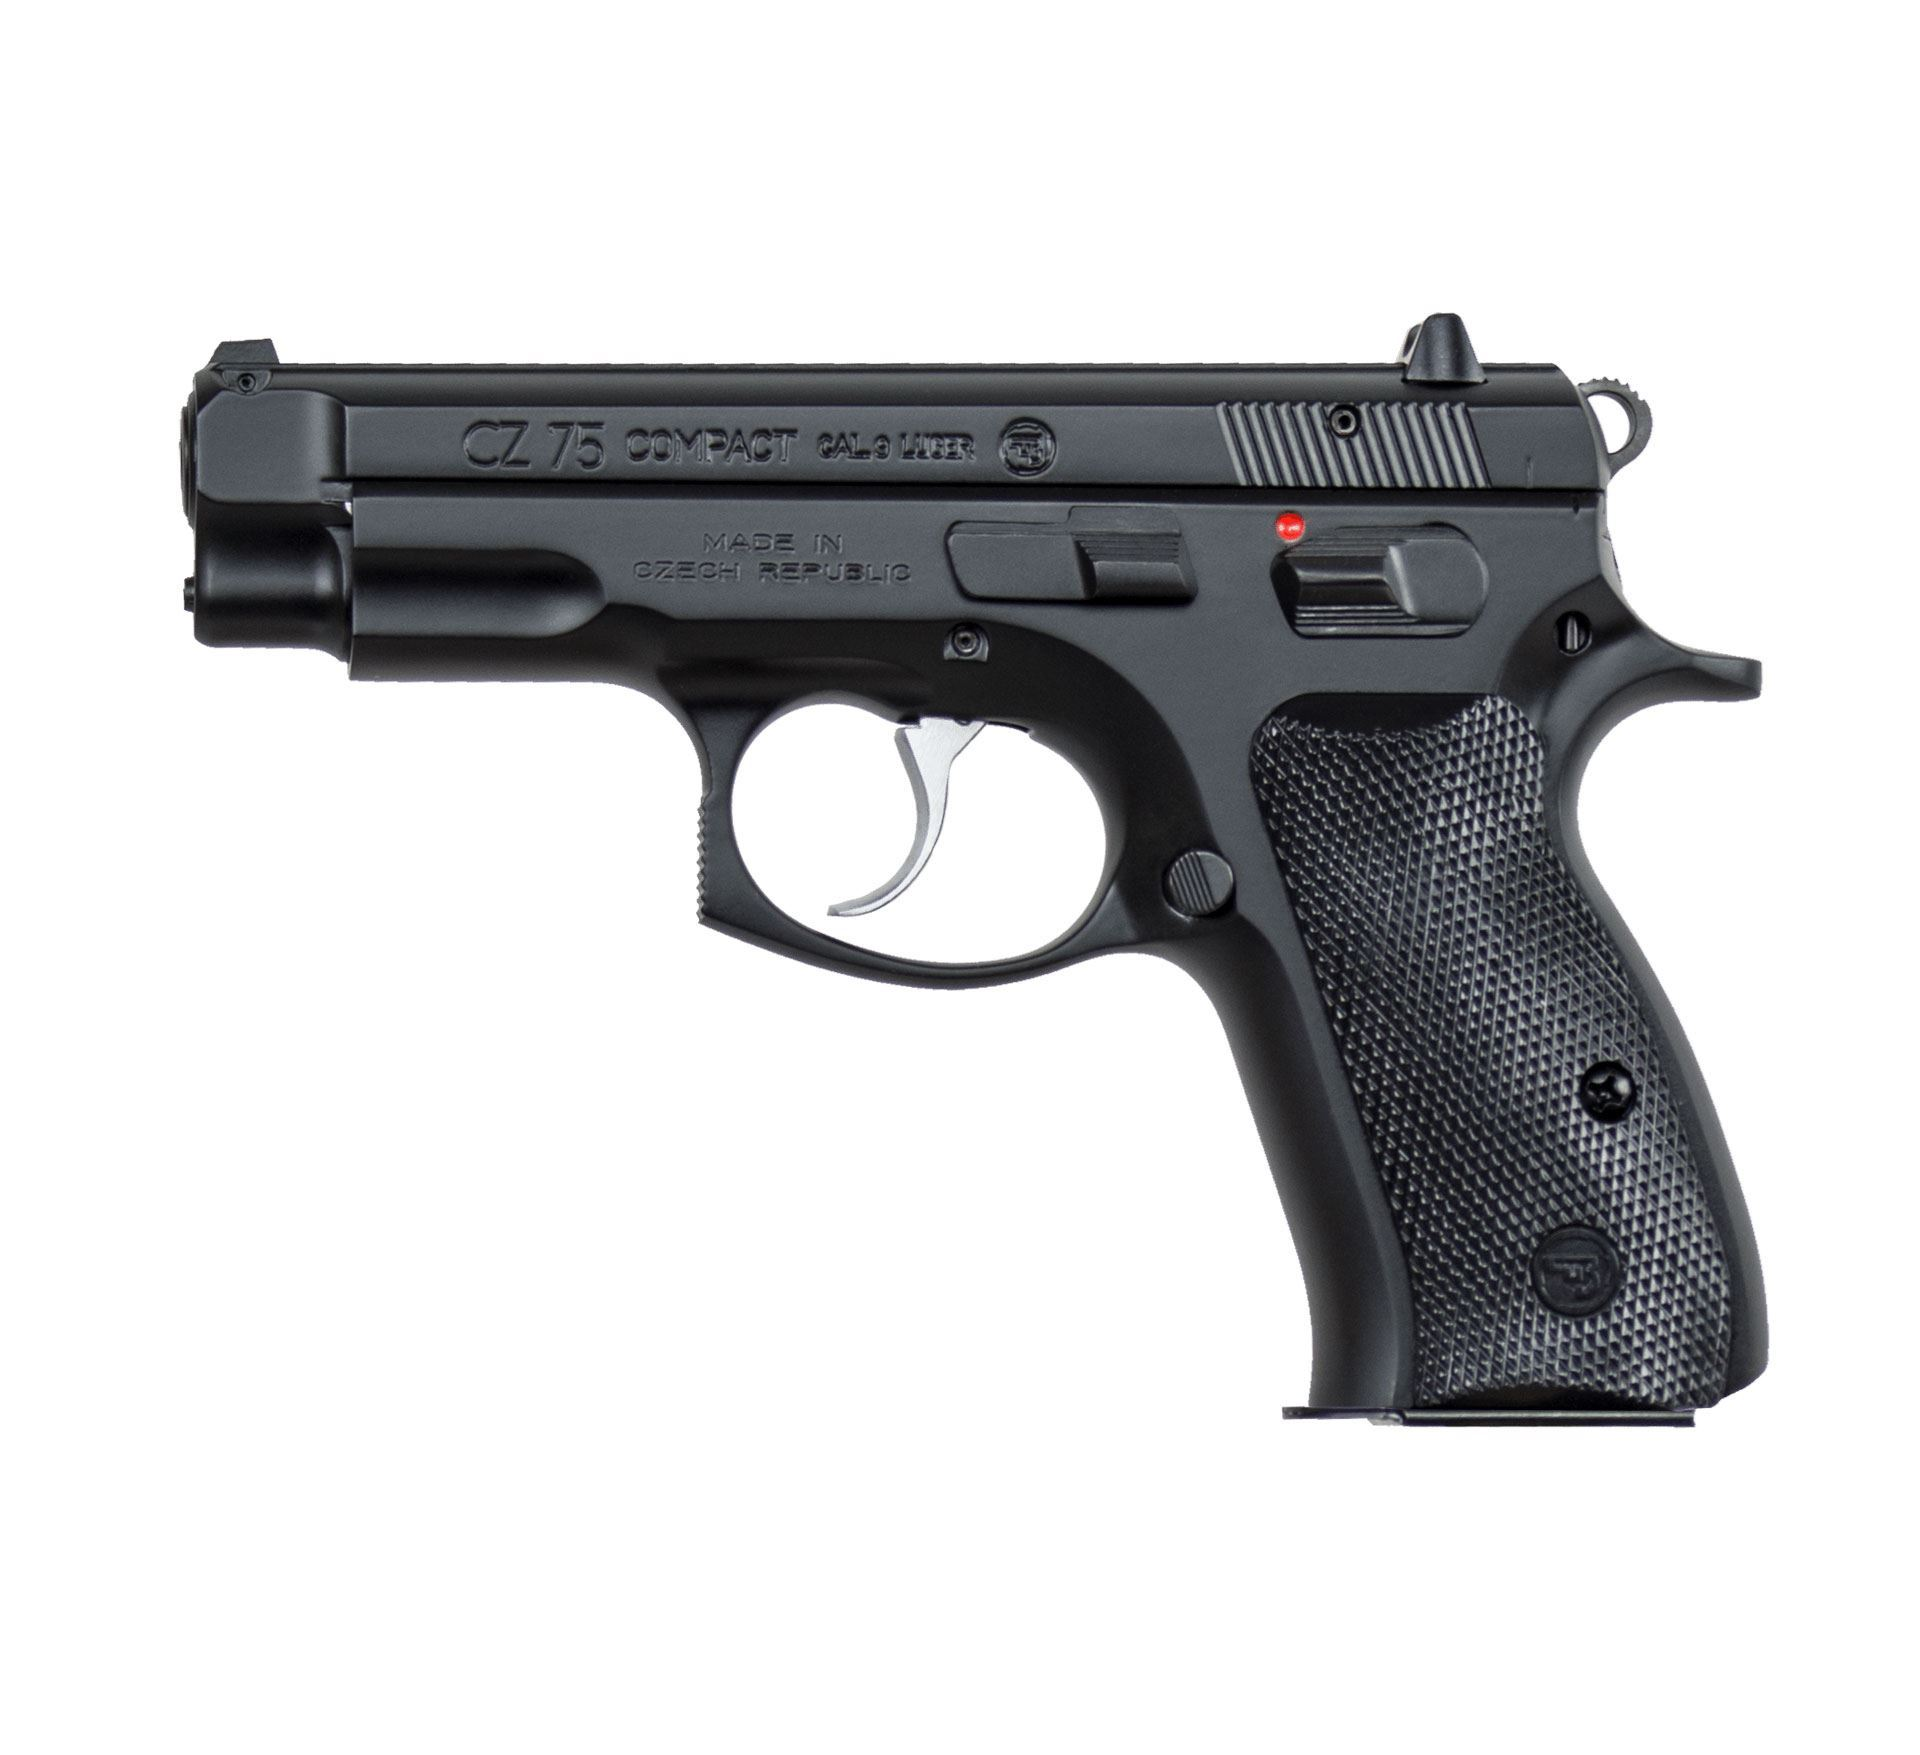 CZ 75 Compact 9 mm (low capacity) Pistol - 01190 - $499 99